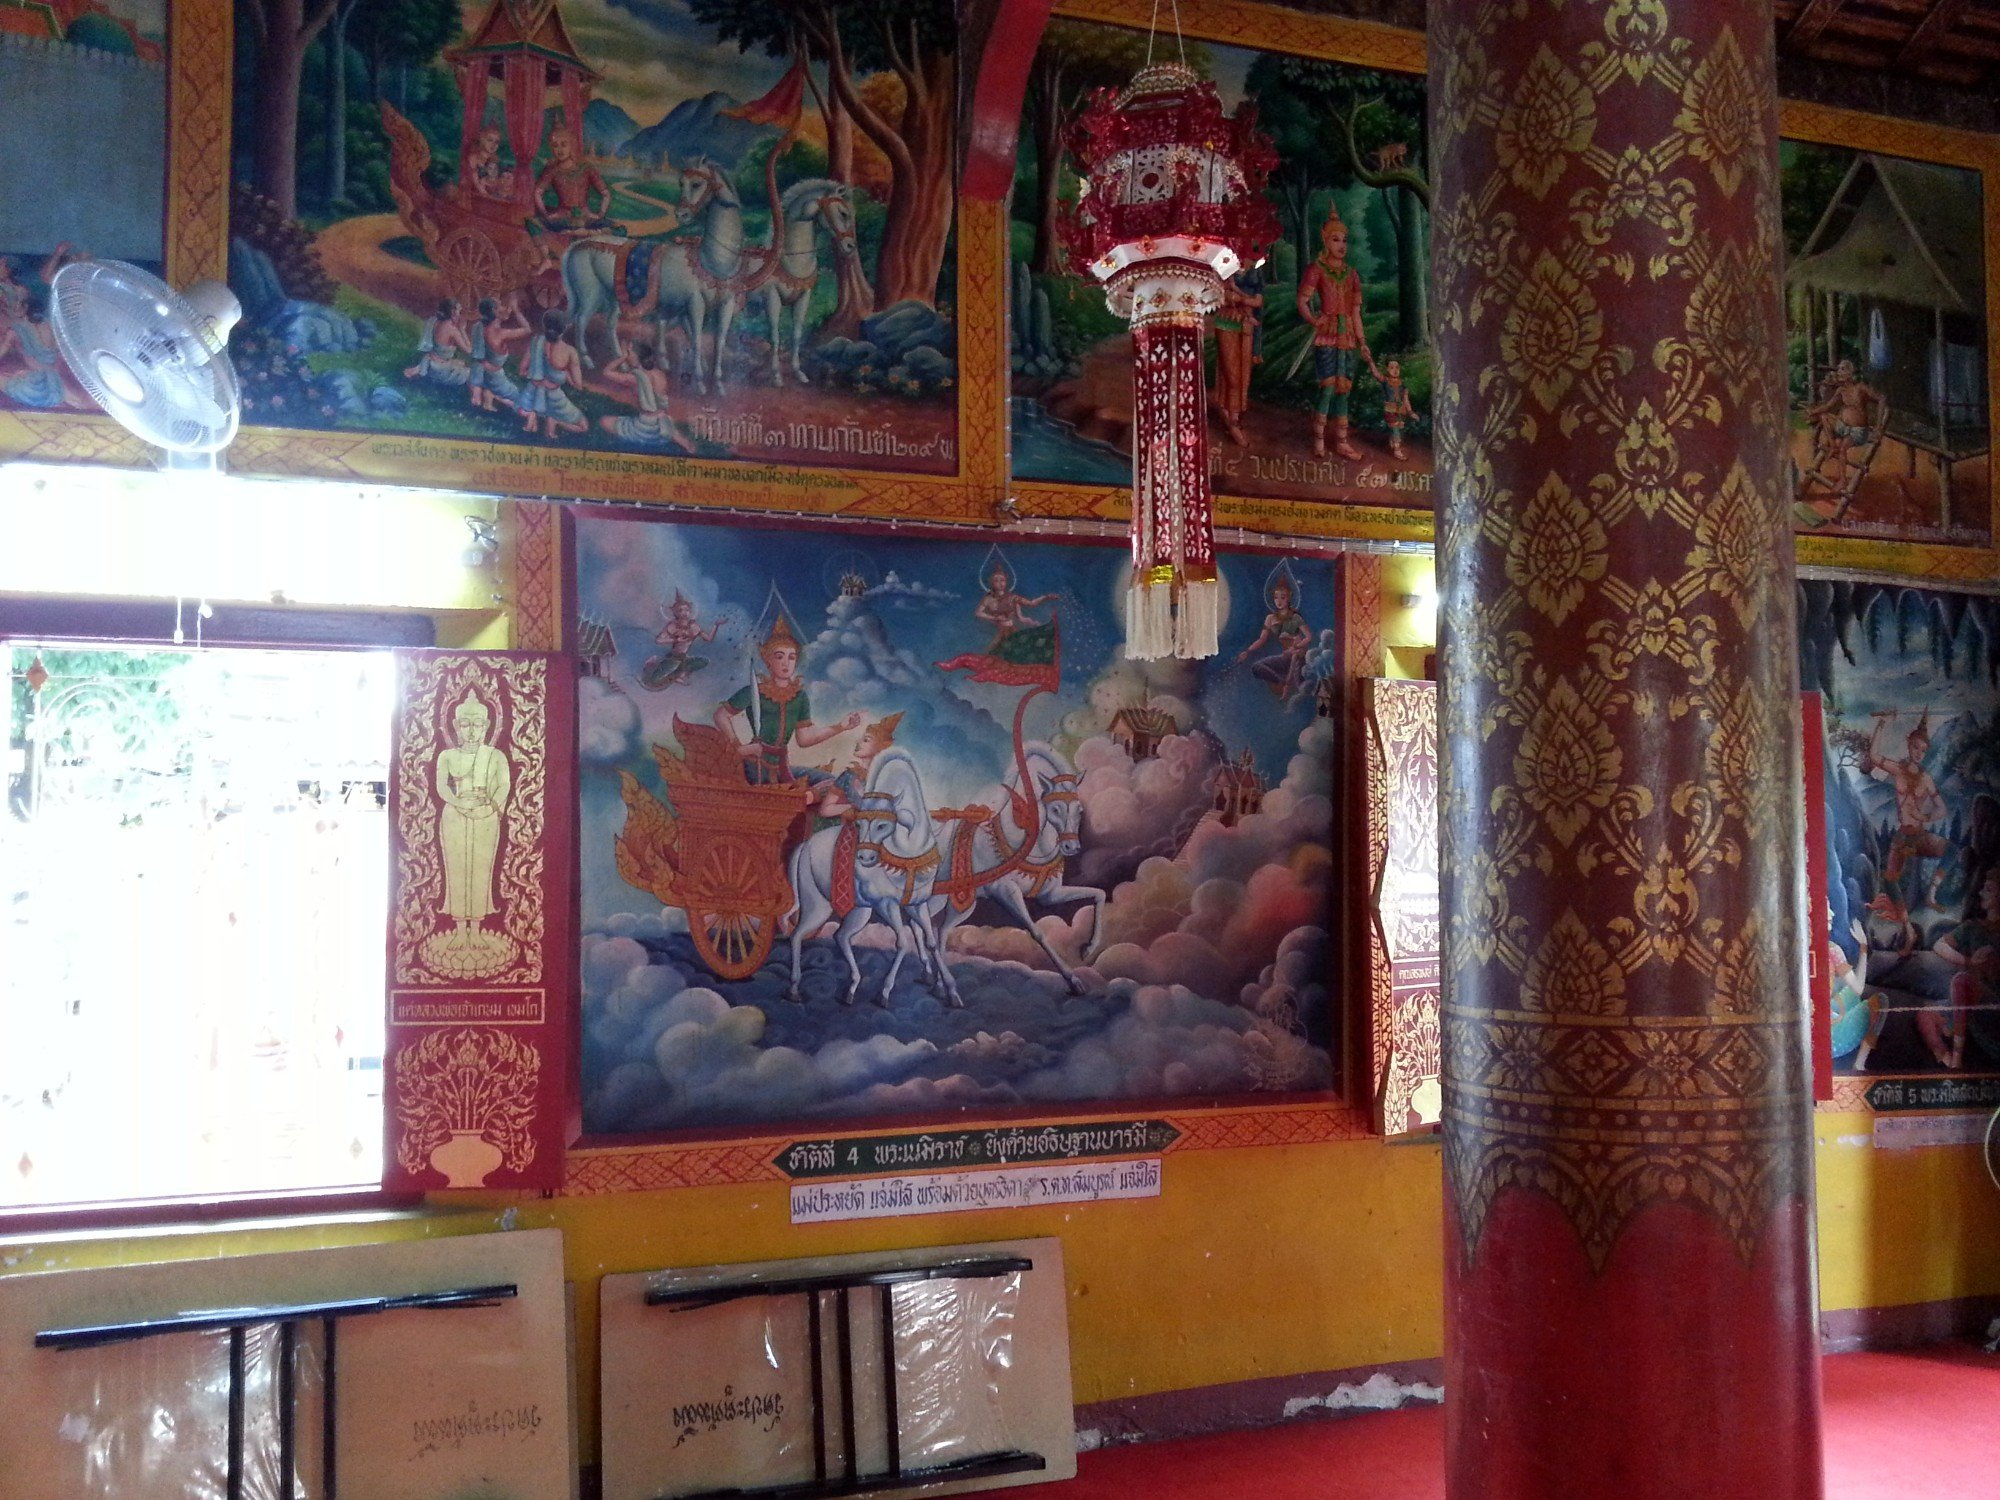 Wall murals at Wat Pratu Ton Phueng